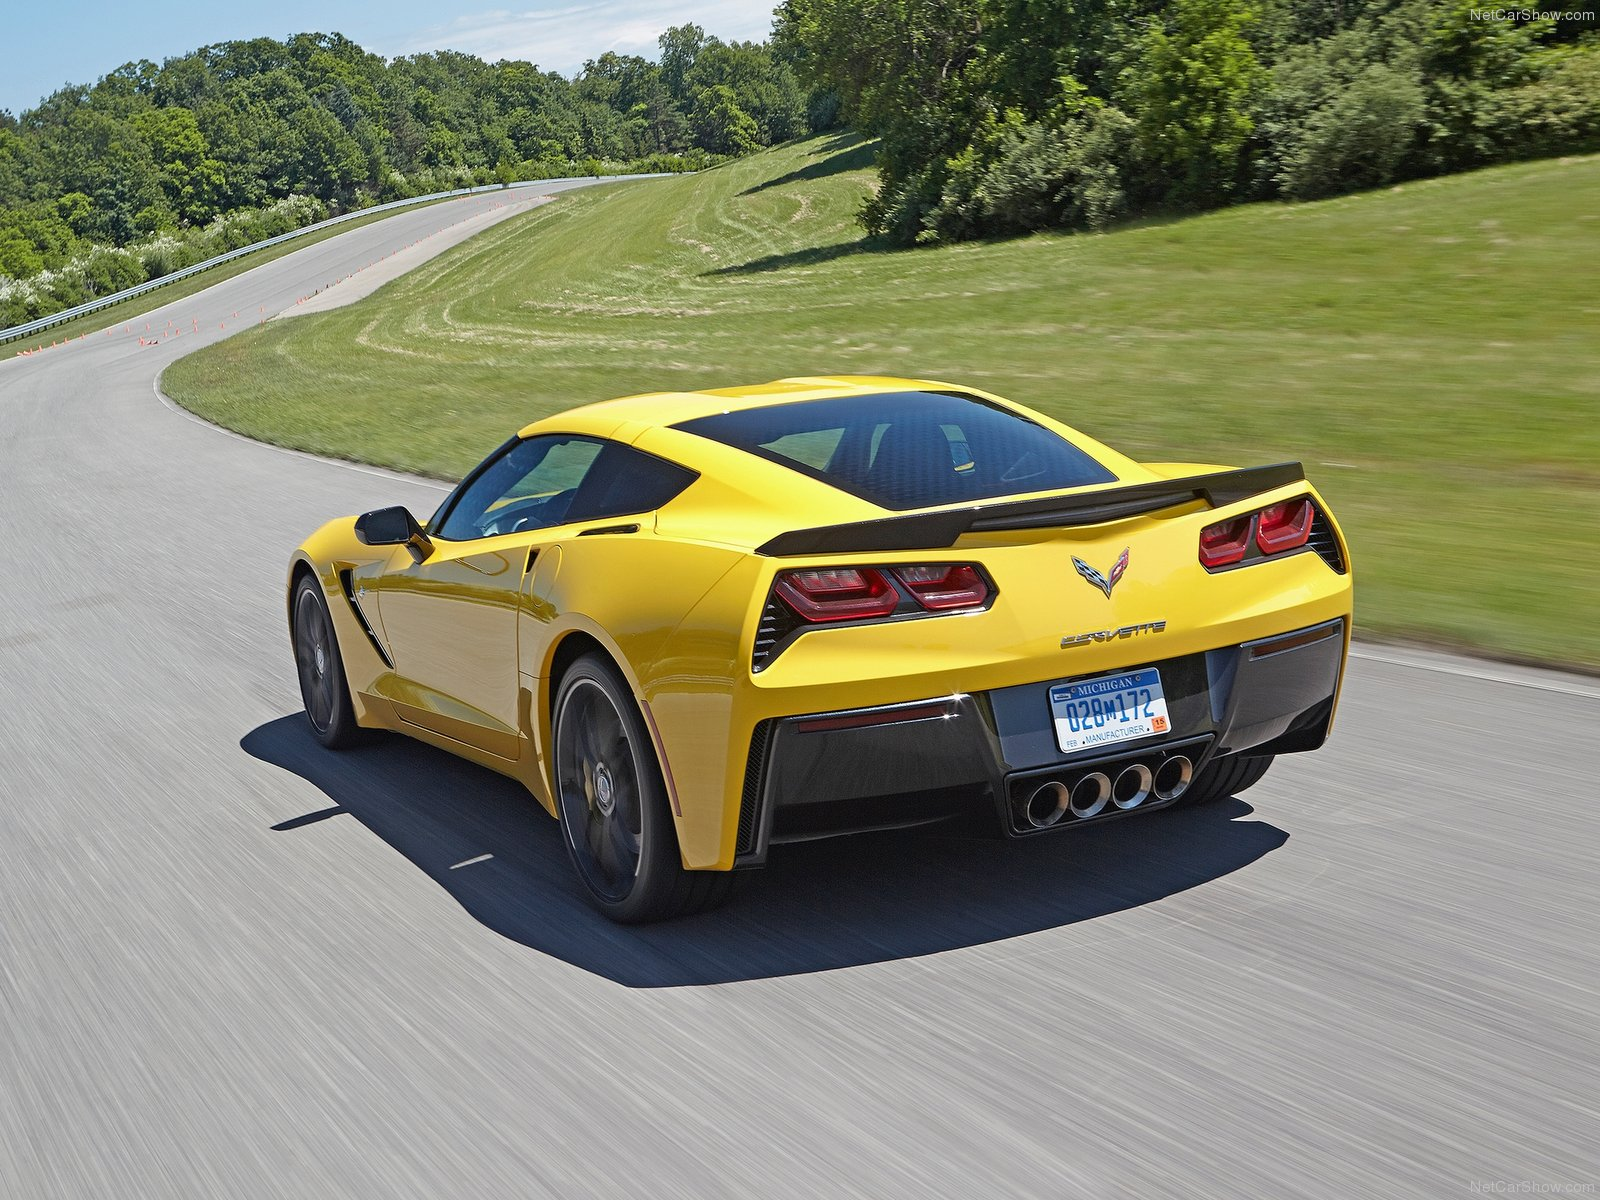 Chevrolet Corvette C7 Coupe 2014